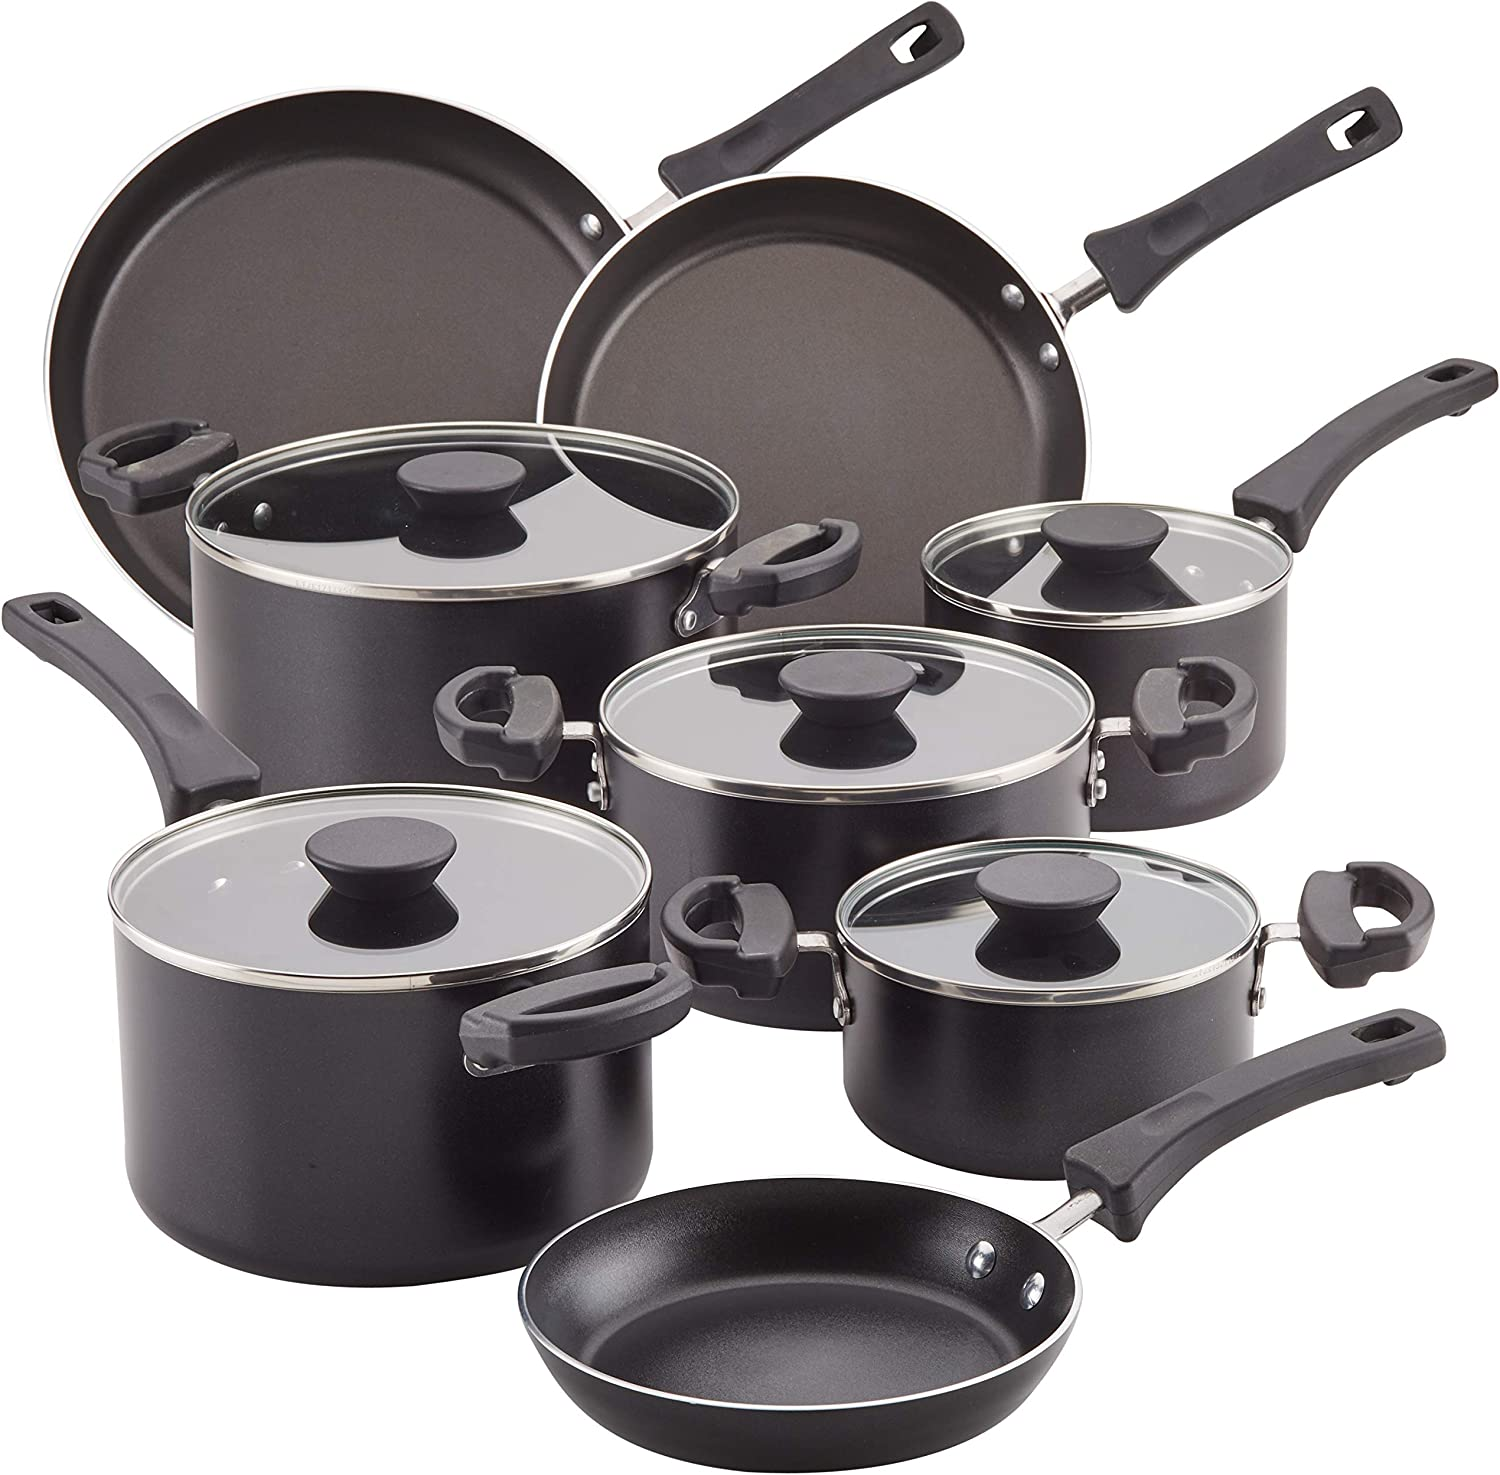 Farberware 22245 Neat Nest Space Saving 13-Piece Aluminum Cookware Set, Black